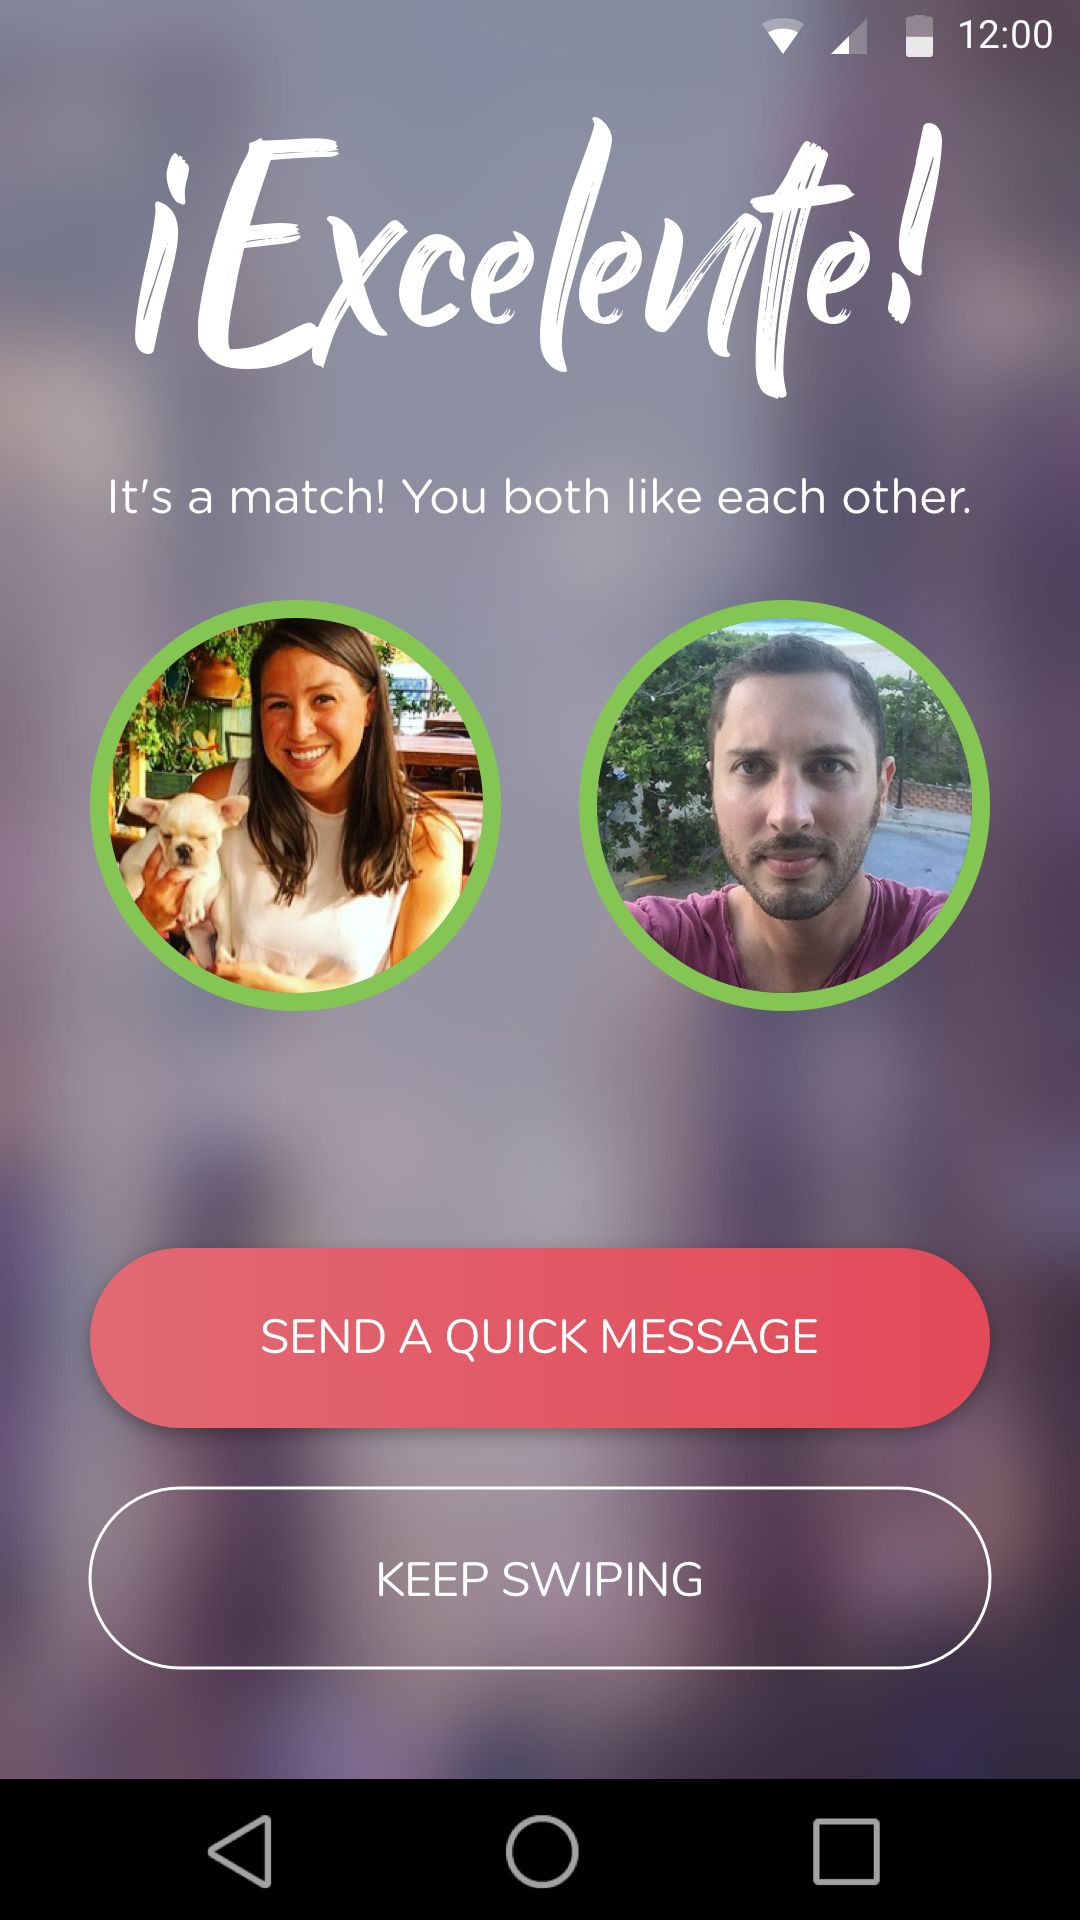 The app functions similarly to Tinder.